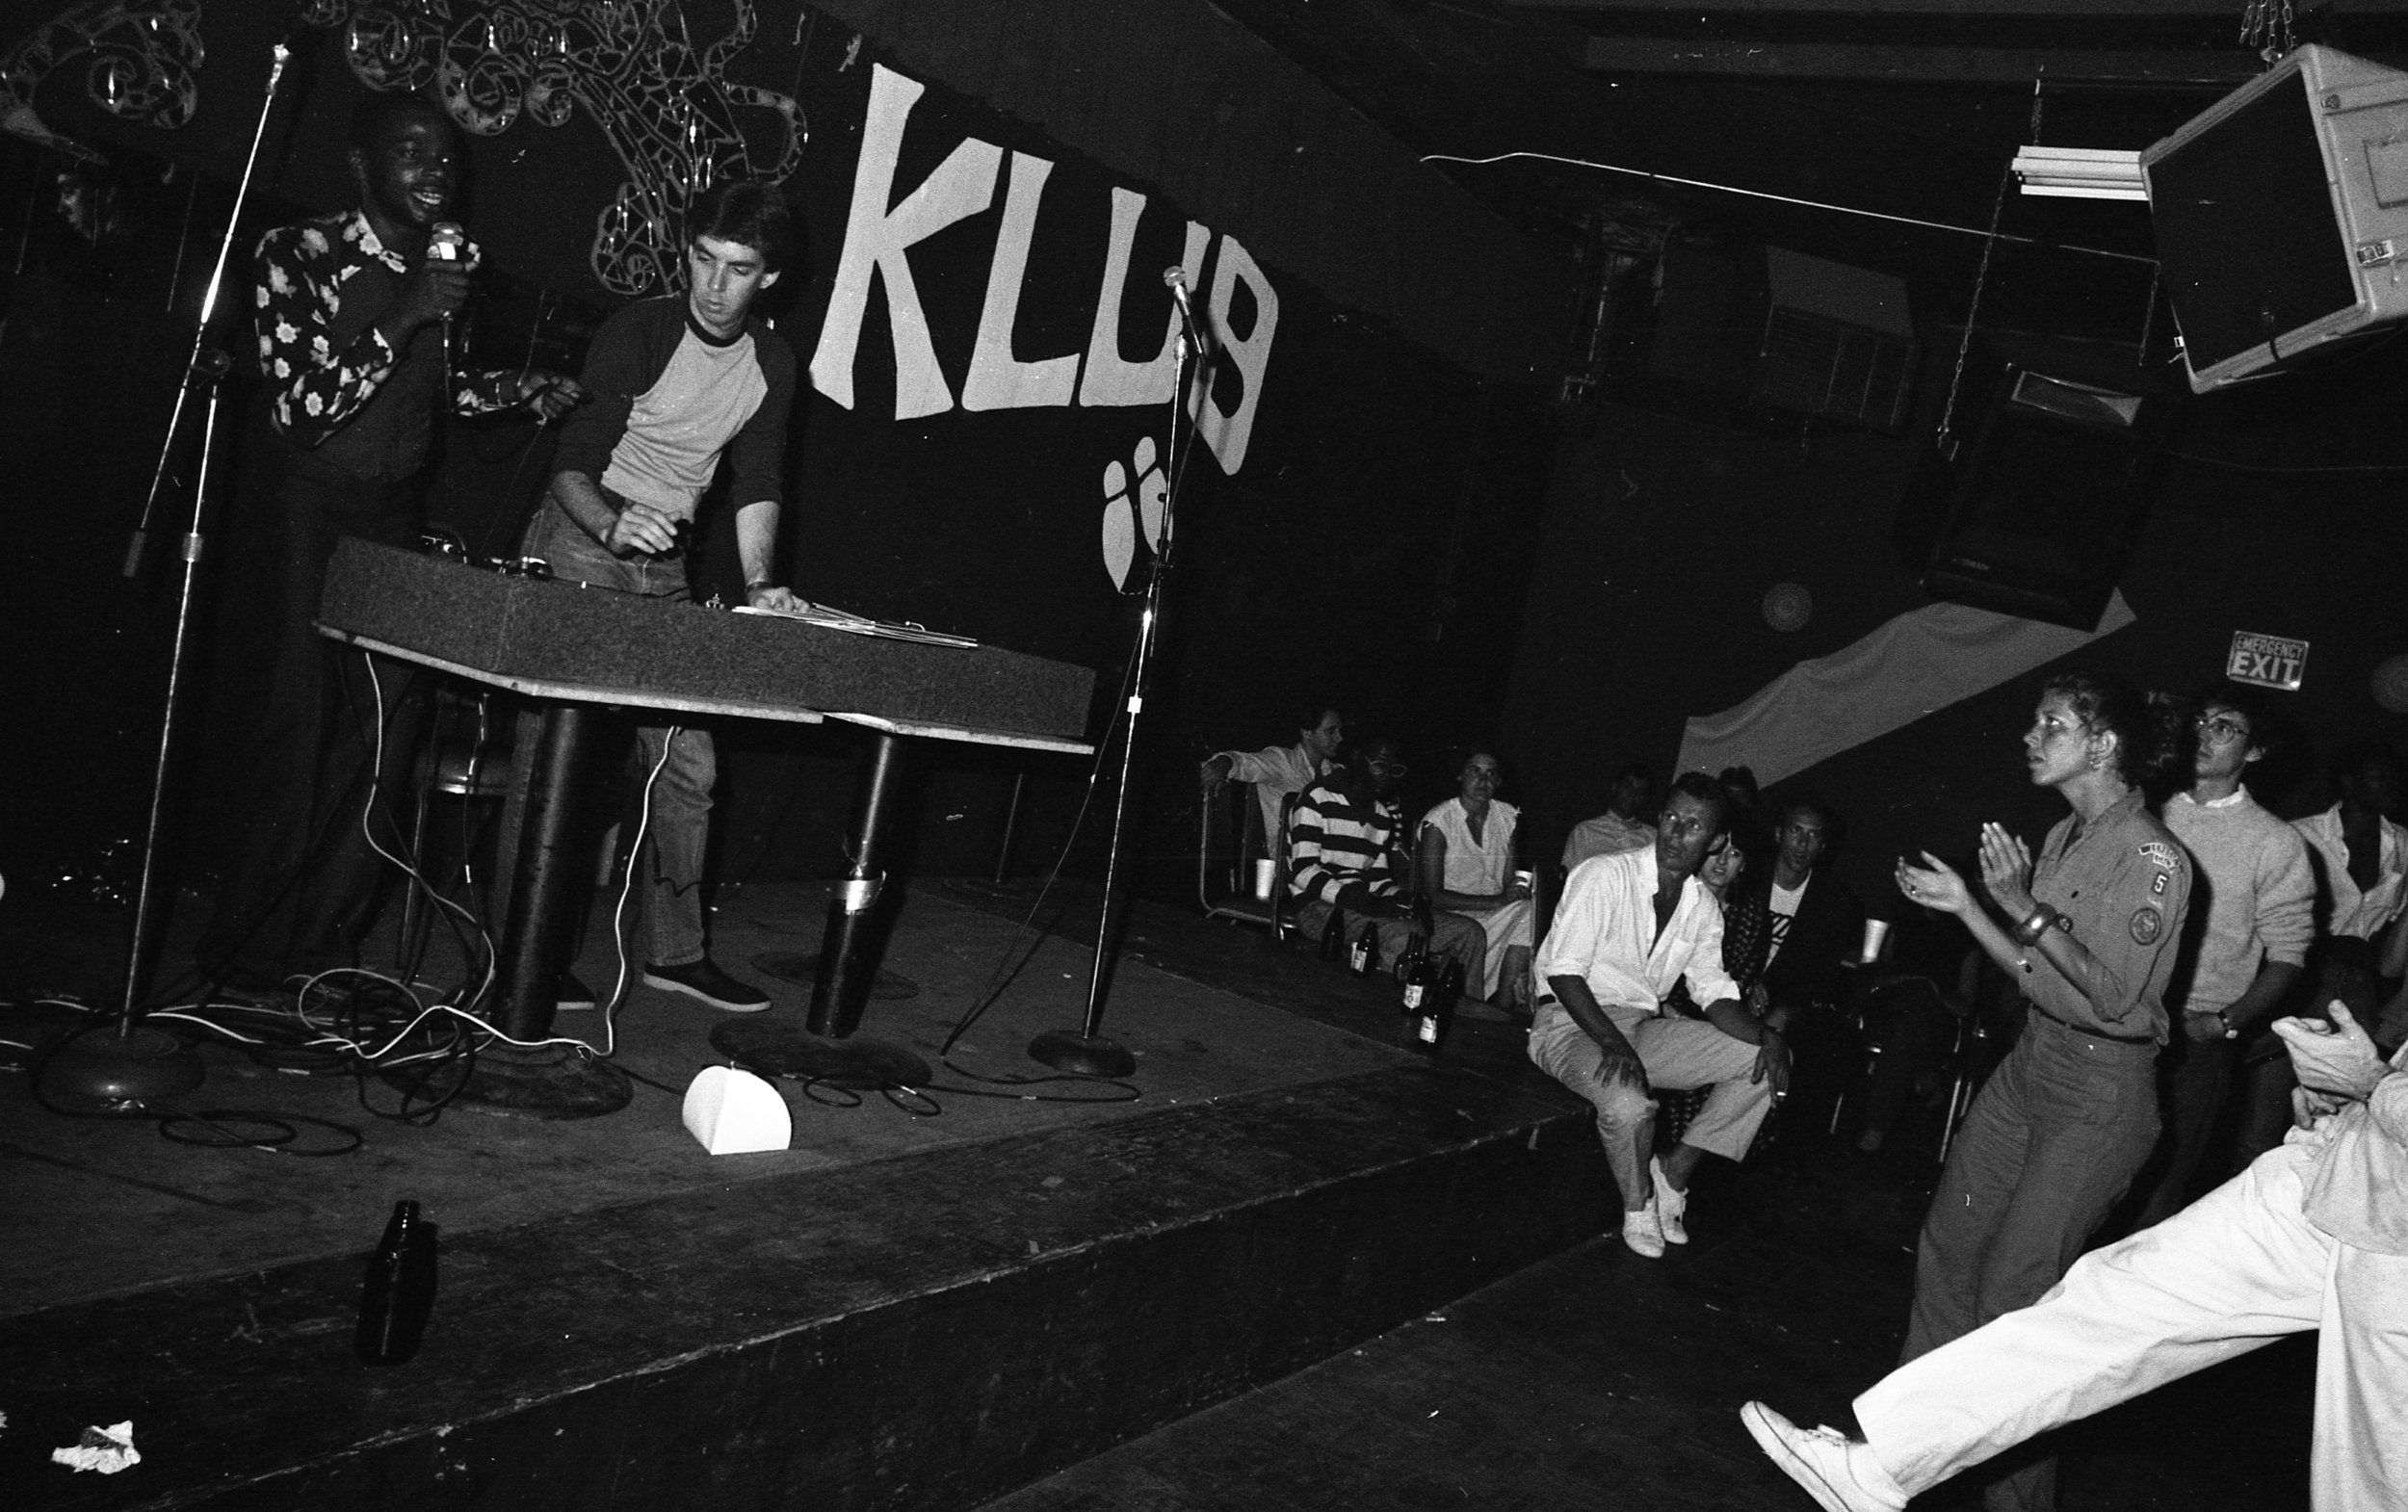 Rap contest, On Klub, Los Angeles, 1981